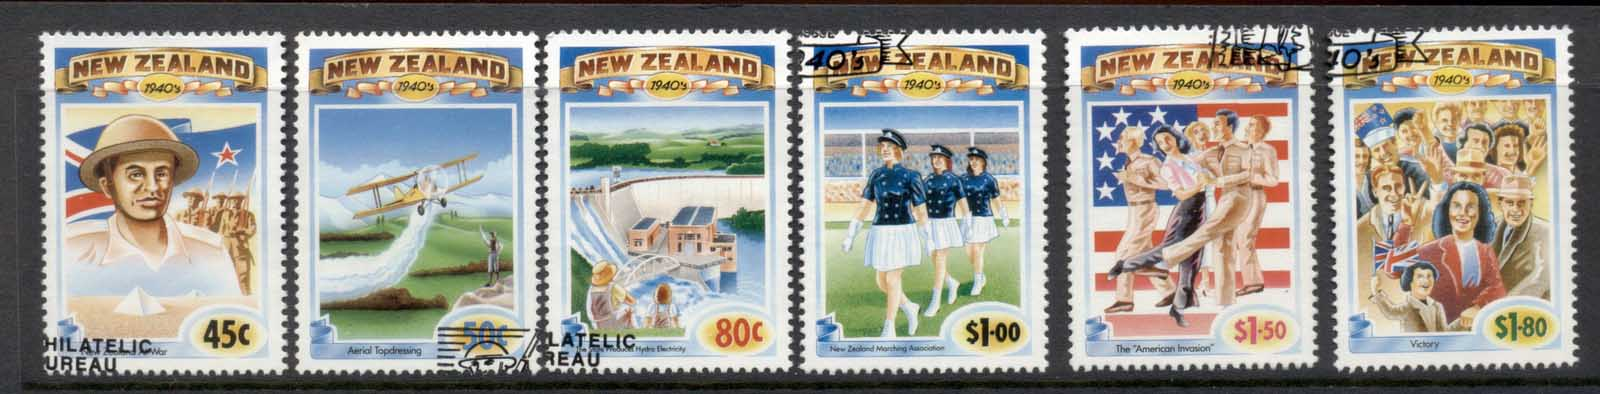 New Zealand 1993 The Emerging Years 1940'5 FU